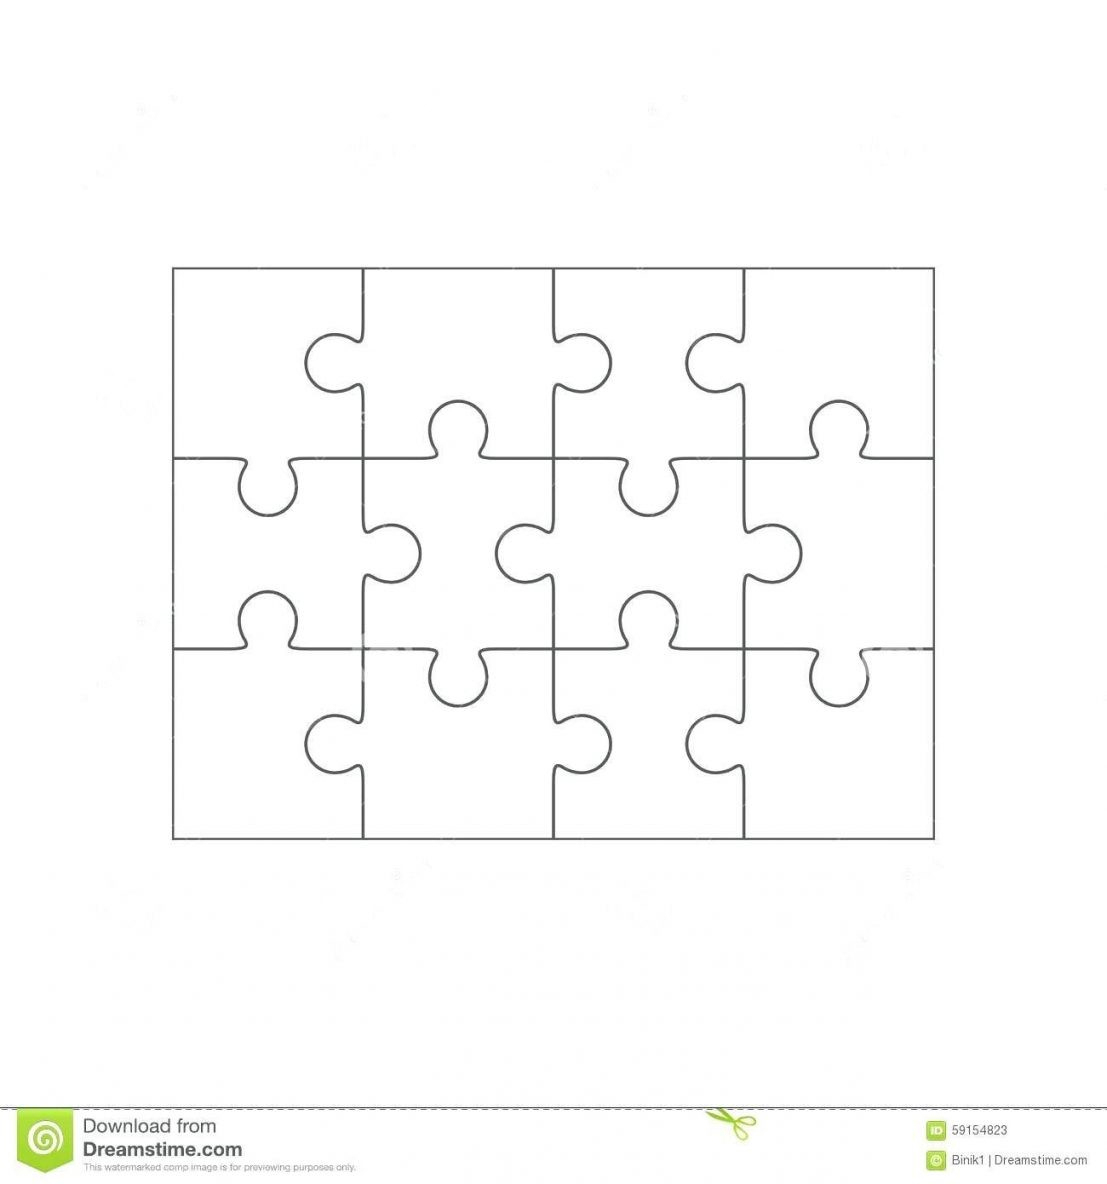 Crossword Puzzle Maker And Word Search Crosswords Printable Jigsaw - Printable Jigsaw Puzzles Maker